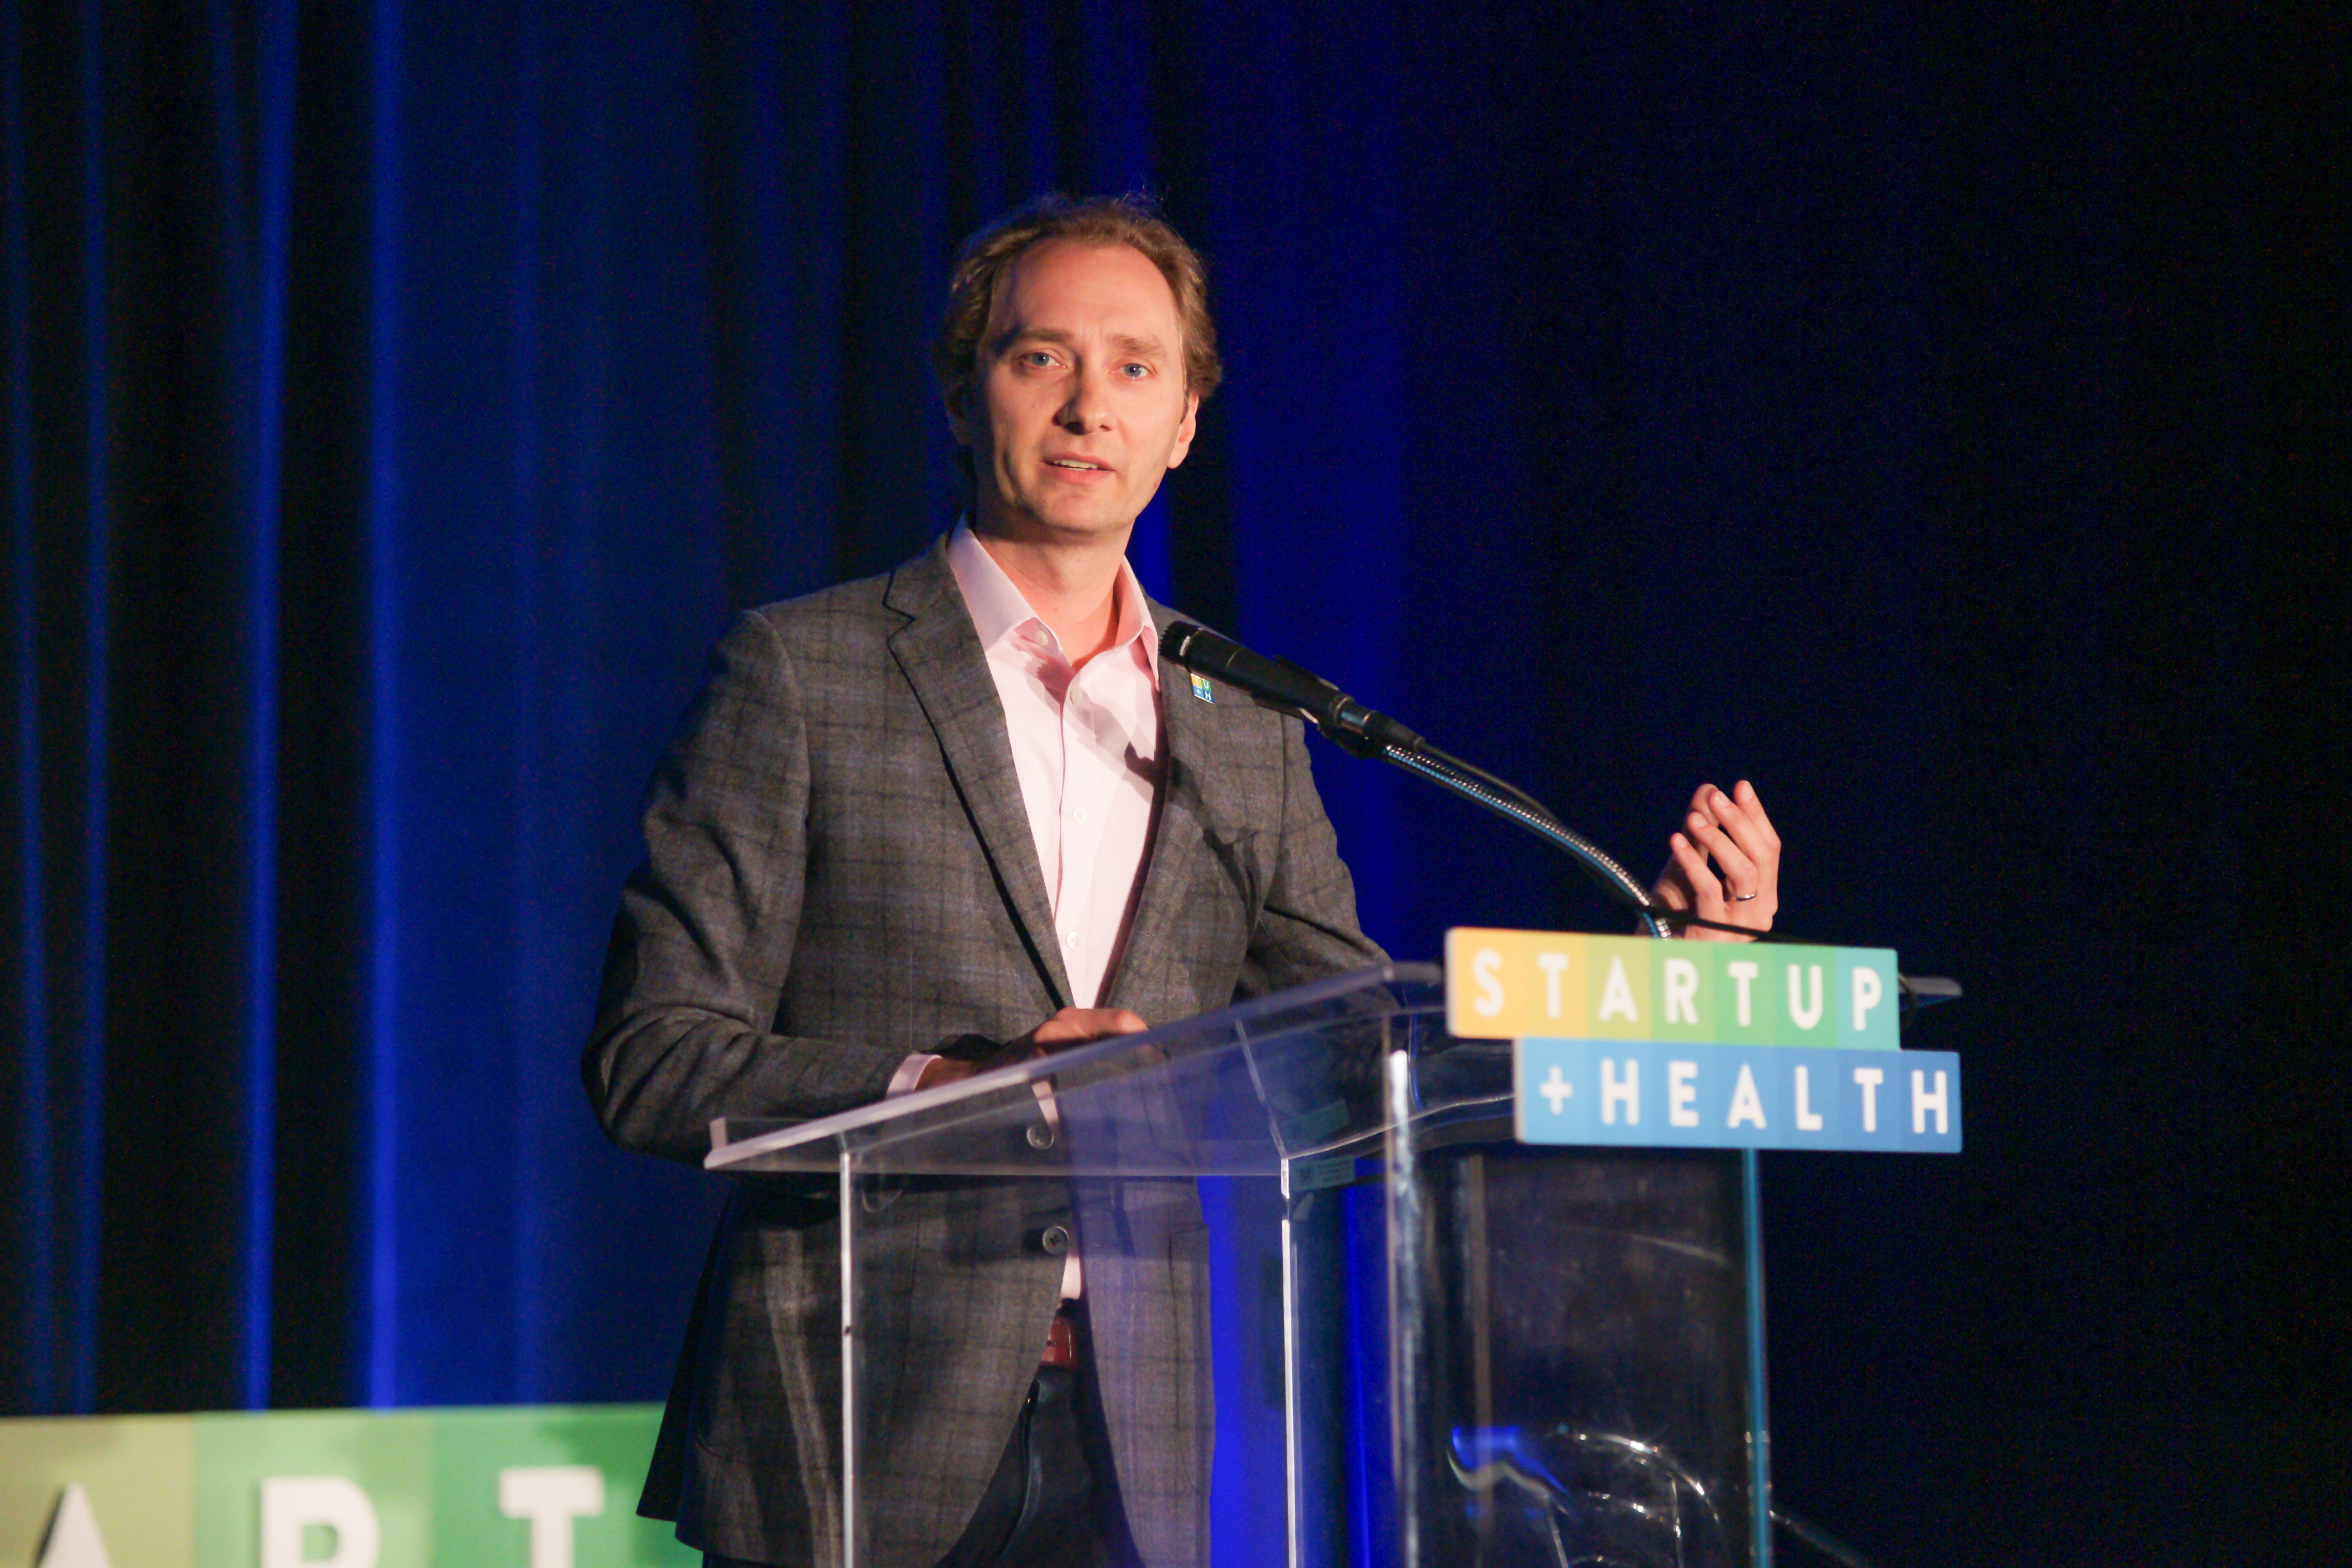 StartUp Health co-founder Unity Stoakes, speaking in Washington D.C. at Health Datapalooze 2015. (StartUp Health)